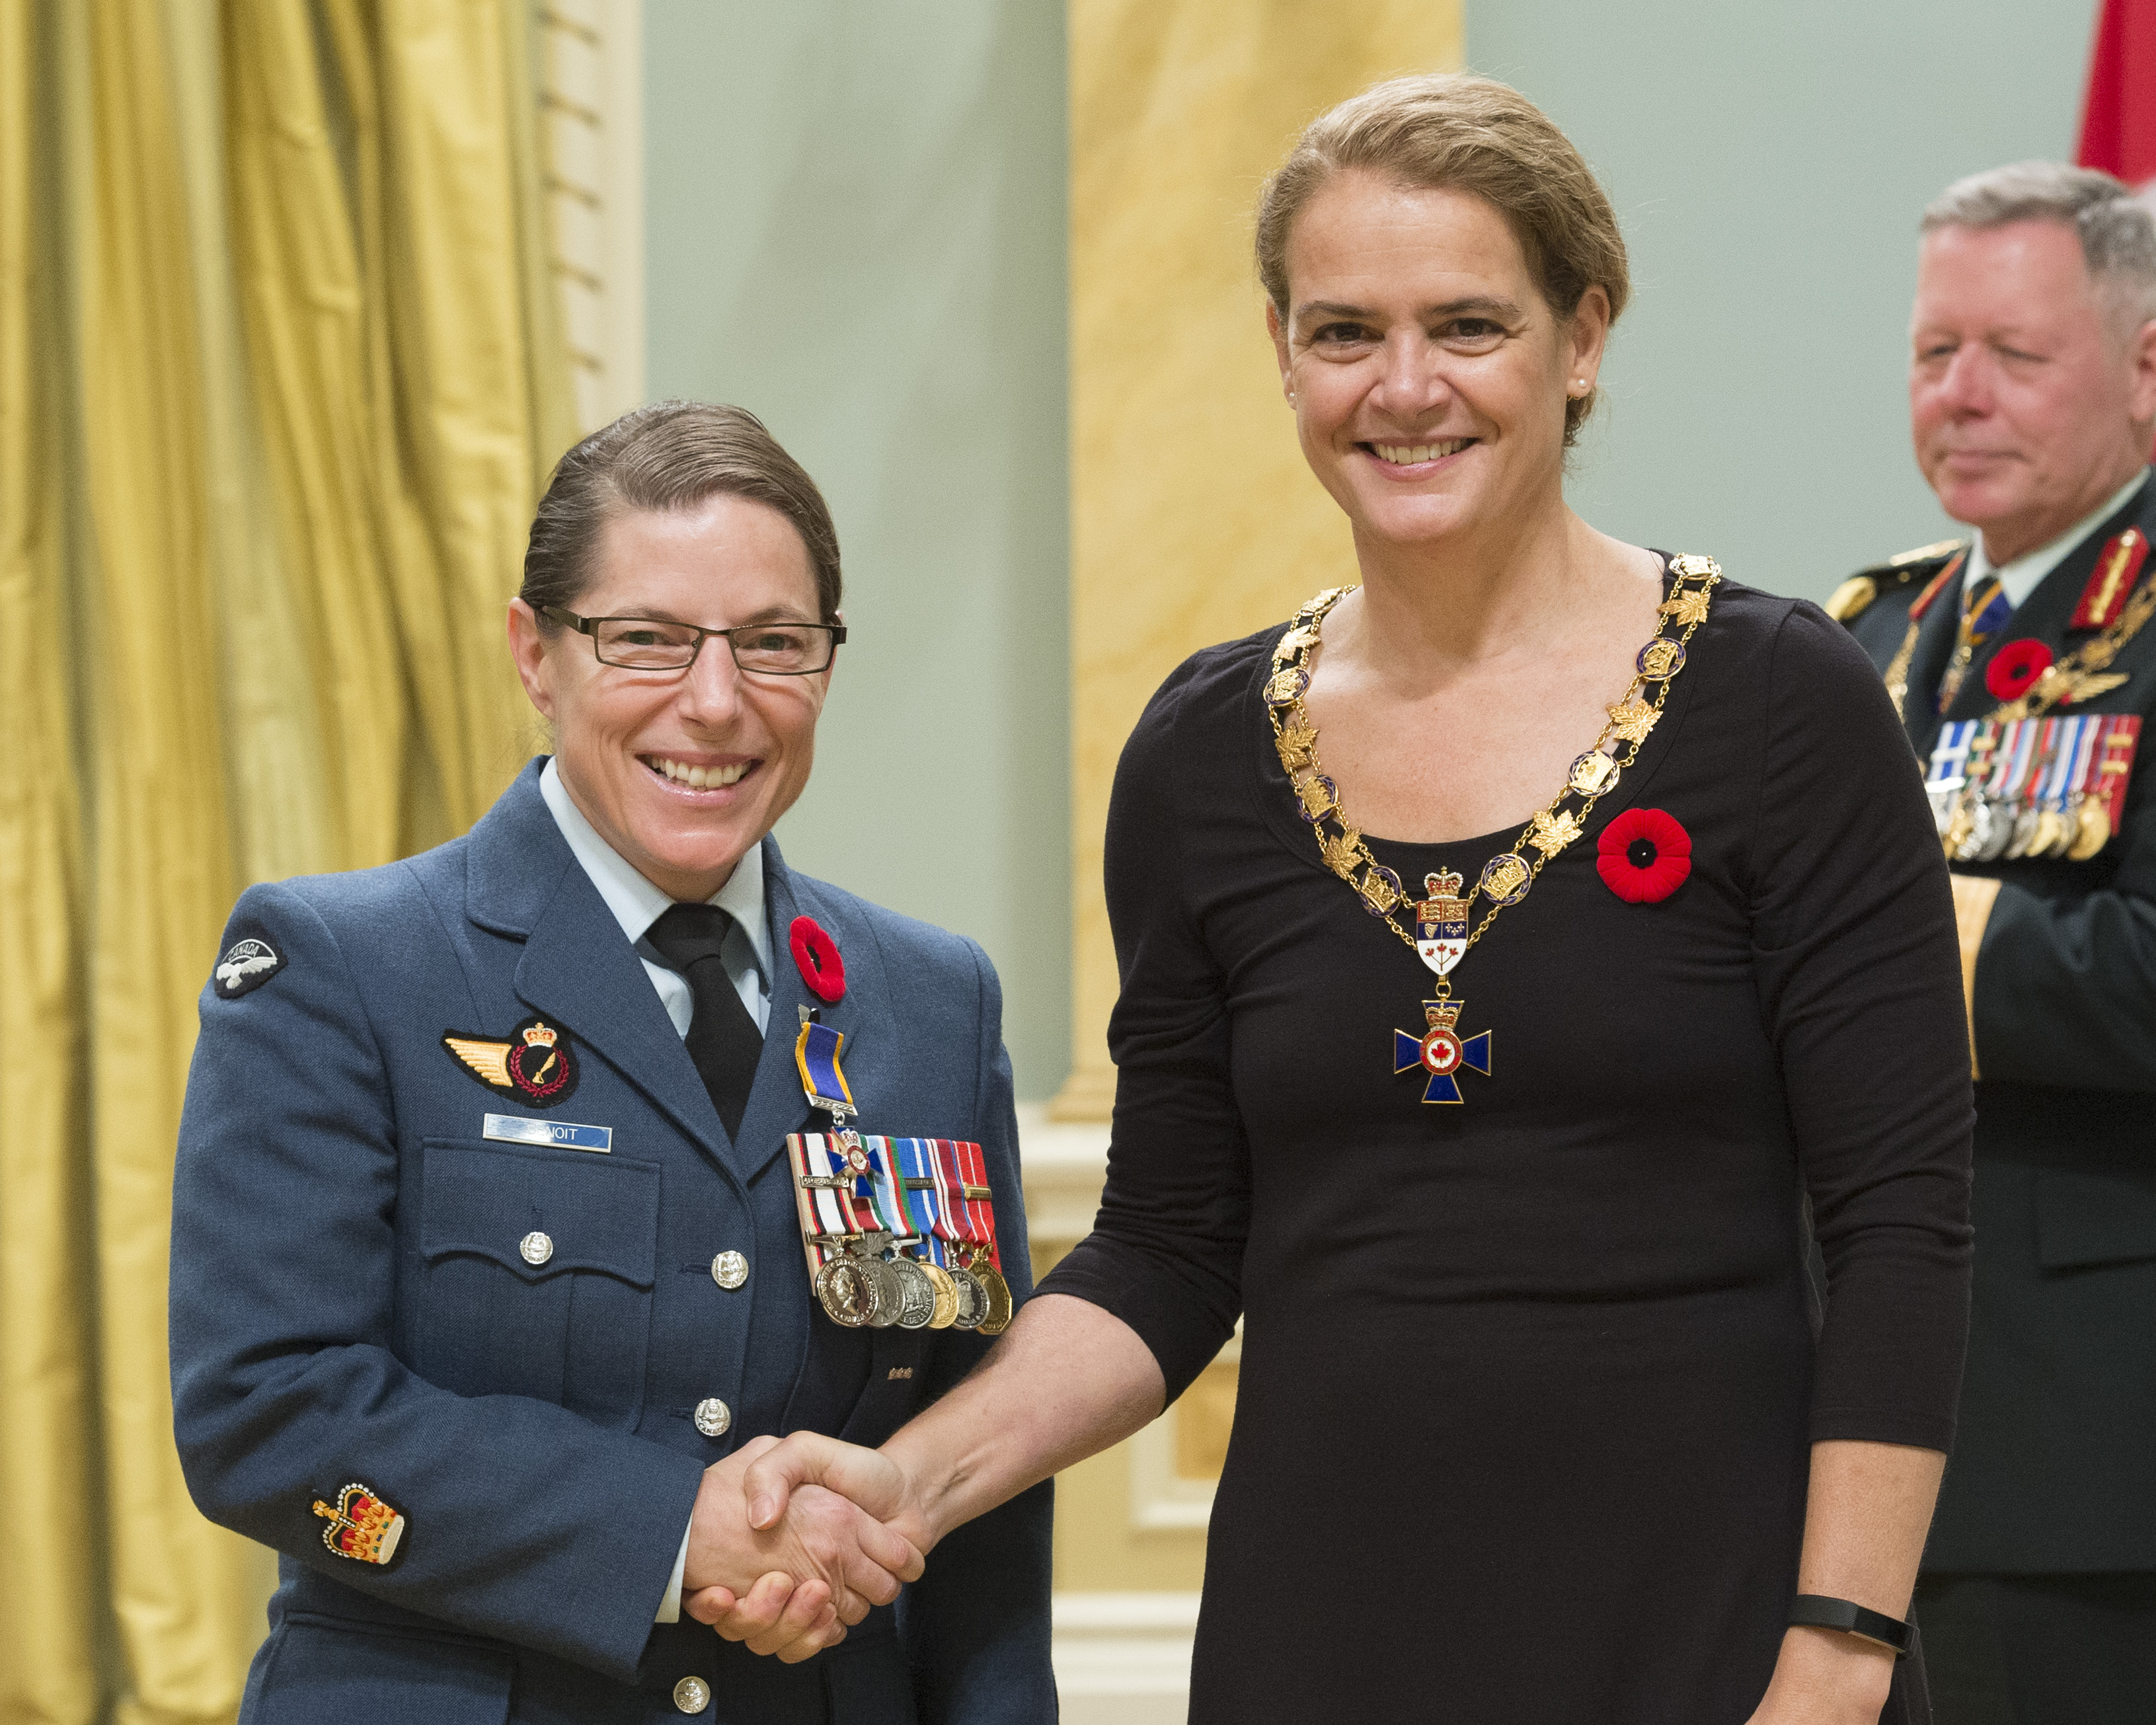 Governor General and Commander-in-Chief of Canada Julie Payette inducts Warrant Officer Vickie Lucie Benoit, Canadian Forces Military Police Group Headquarters, Ottawa, Ontario, into the Order of Military Merit at Rideau Hall on November 10, 2017. PHOTO: Sergeant Johanie Maheu, Rideau Hall © OSGG, GG05-2017-0395-028